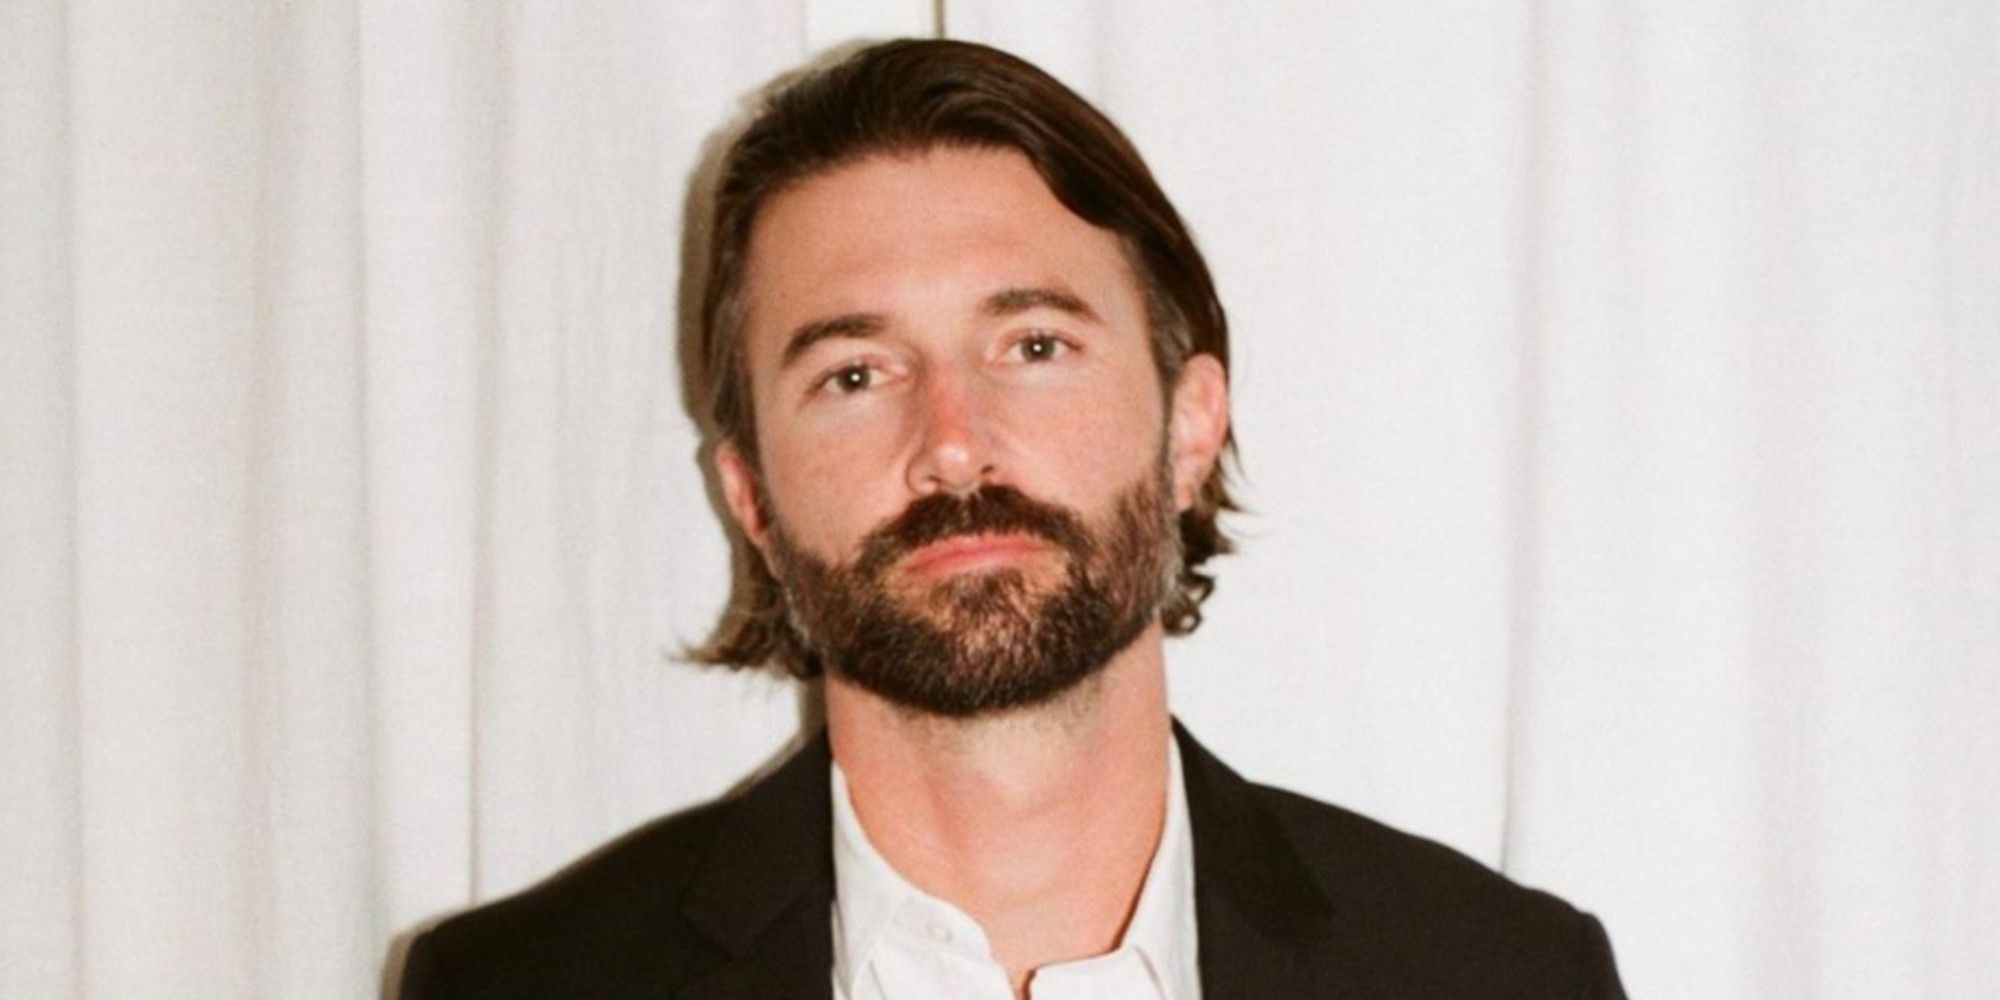 KUWTK: What To Know About Kardashians' Step Brother Brandon Jenner